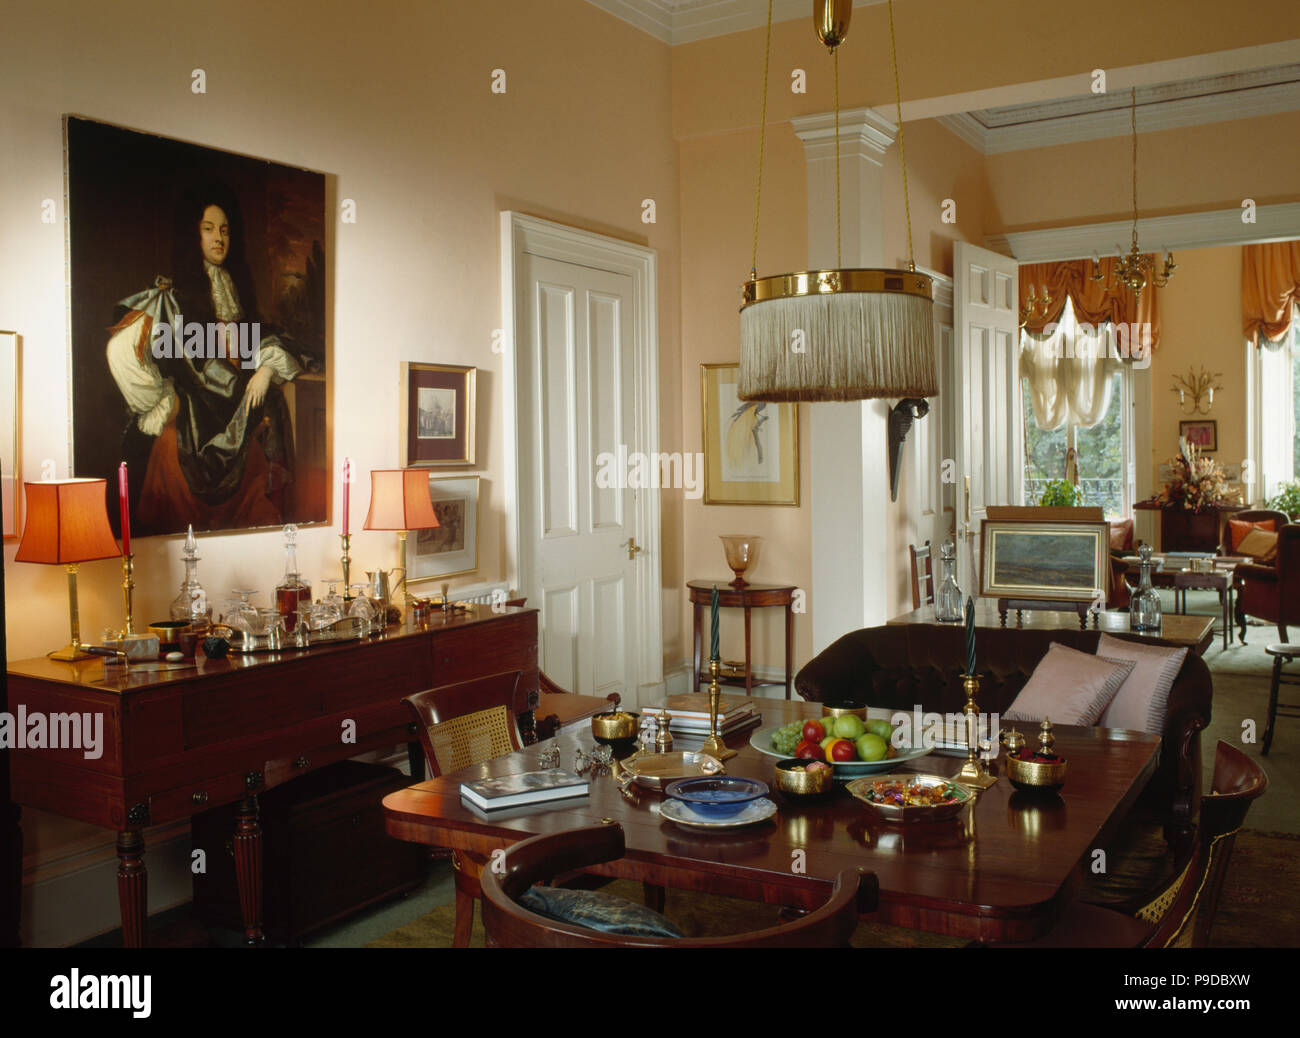 Large oil painting above sideboard in townhouse dining room with antique table and double doors